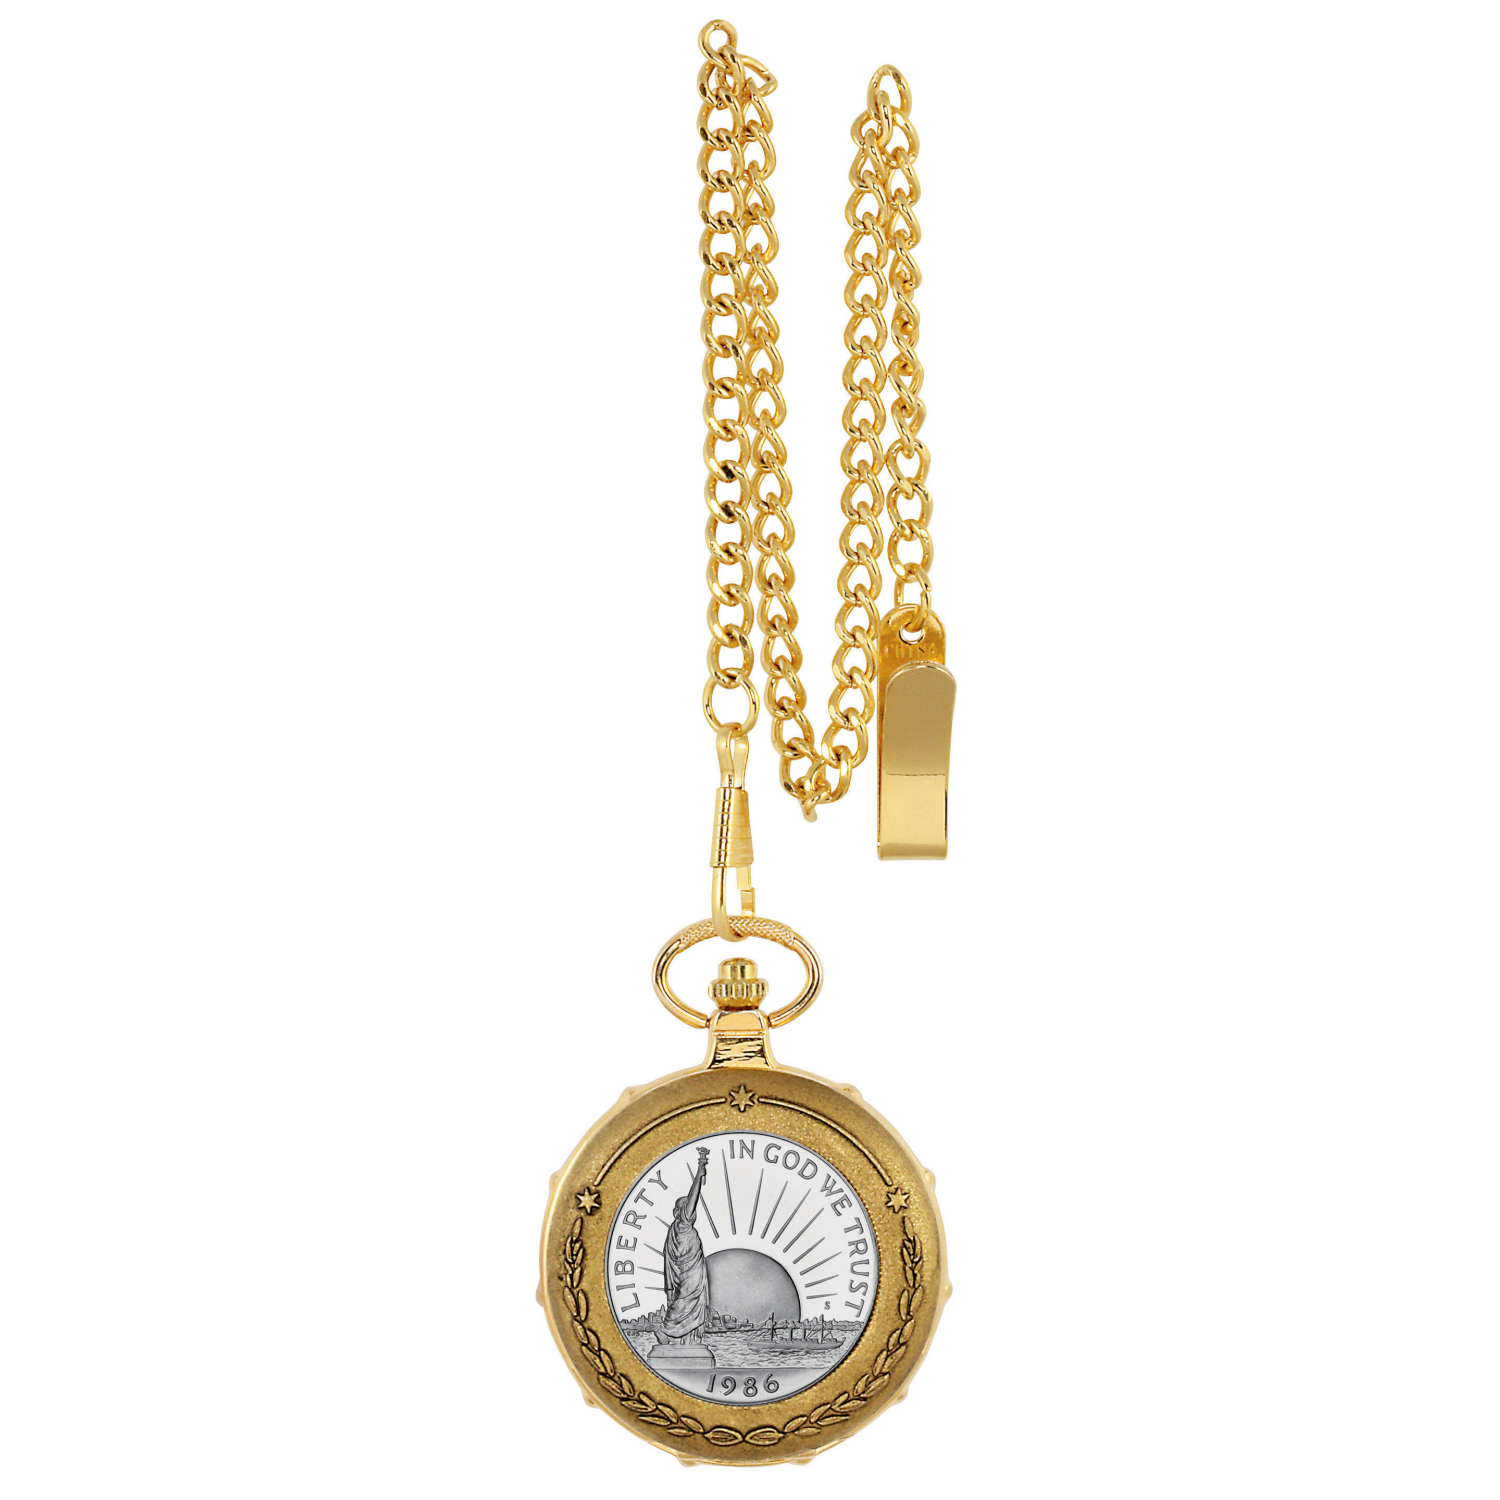 Statue Of Liberty Commemorative Half Dollar Goldtone Train Coin Pocket Watch With Skeleton Movement